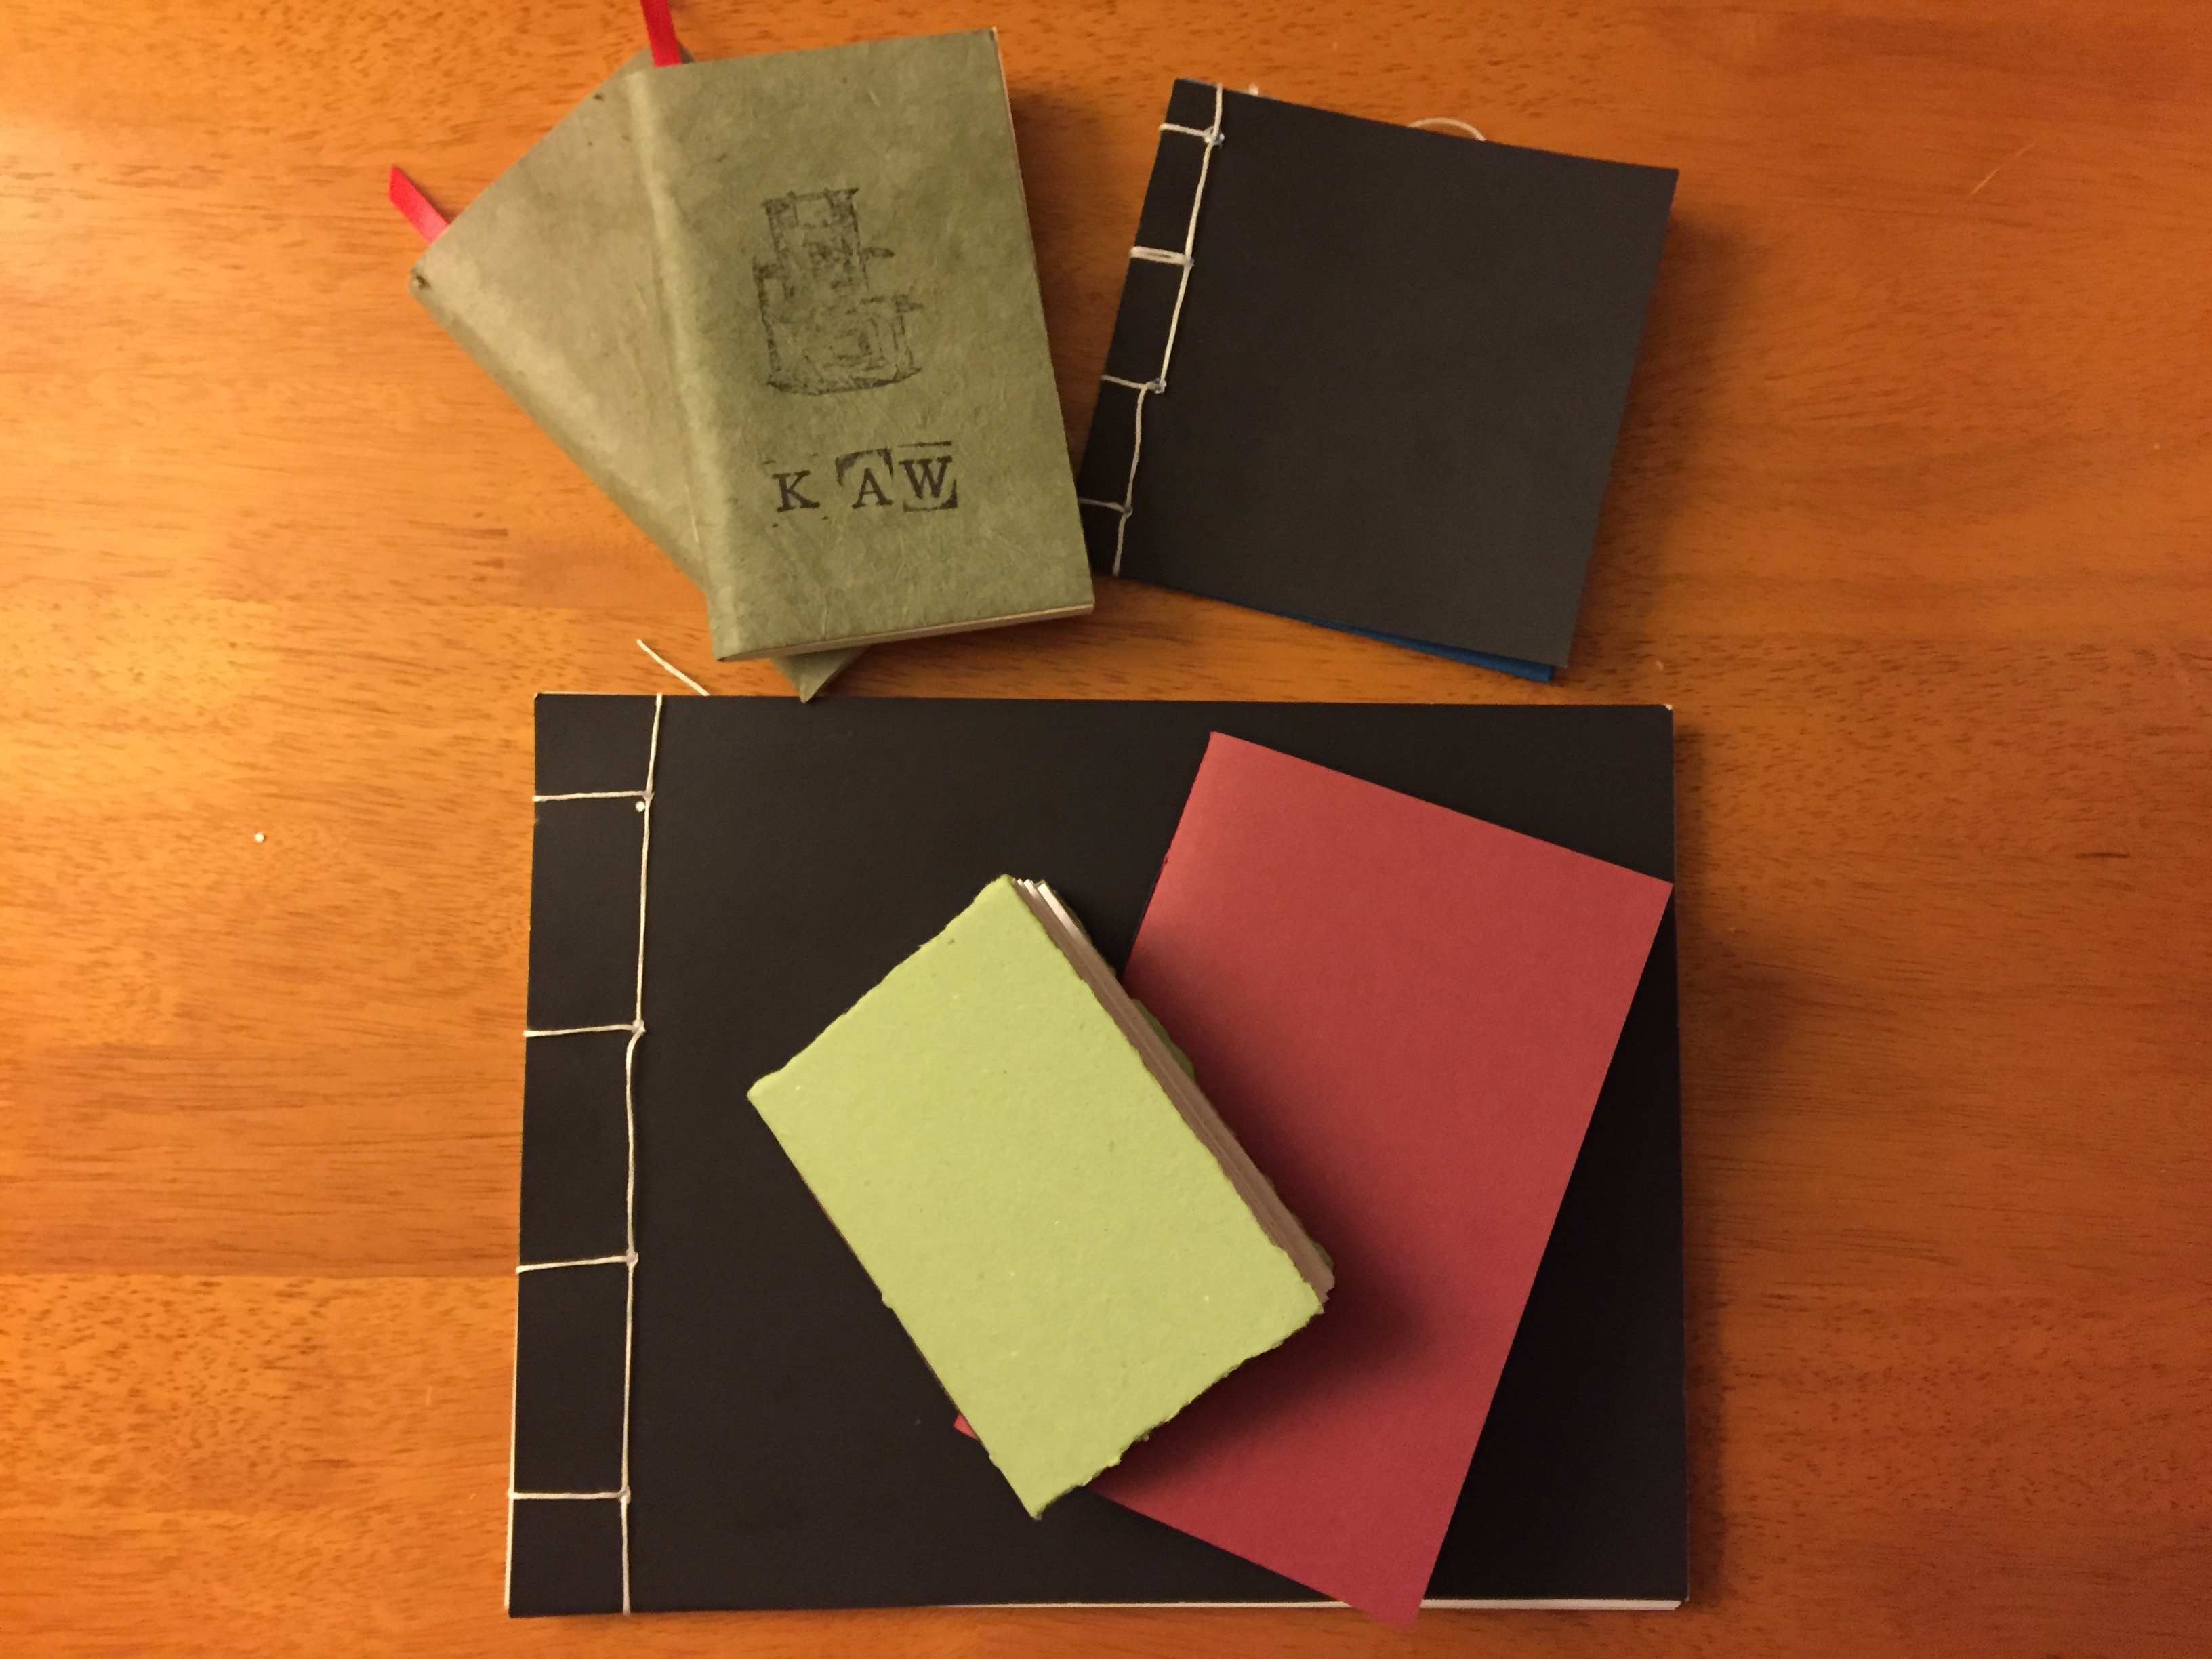 bookbinding bookmaking workshop results the projector